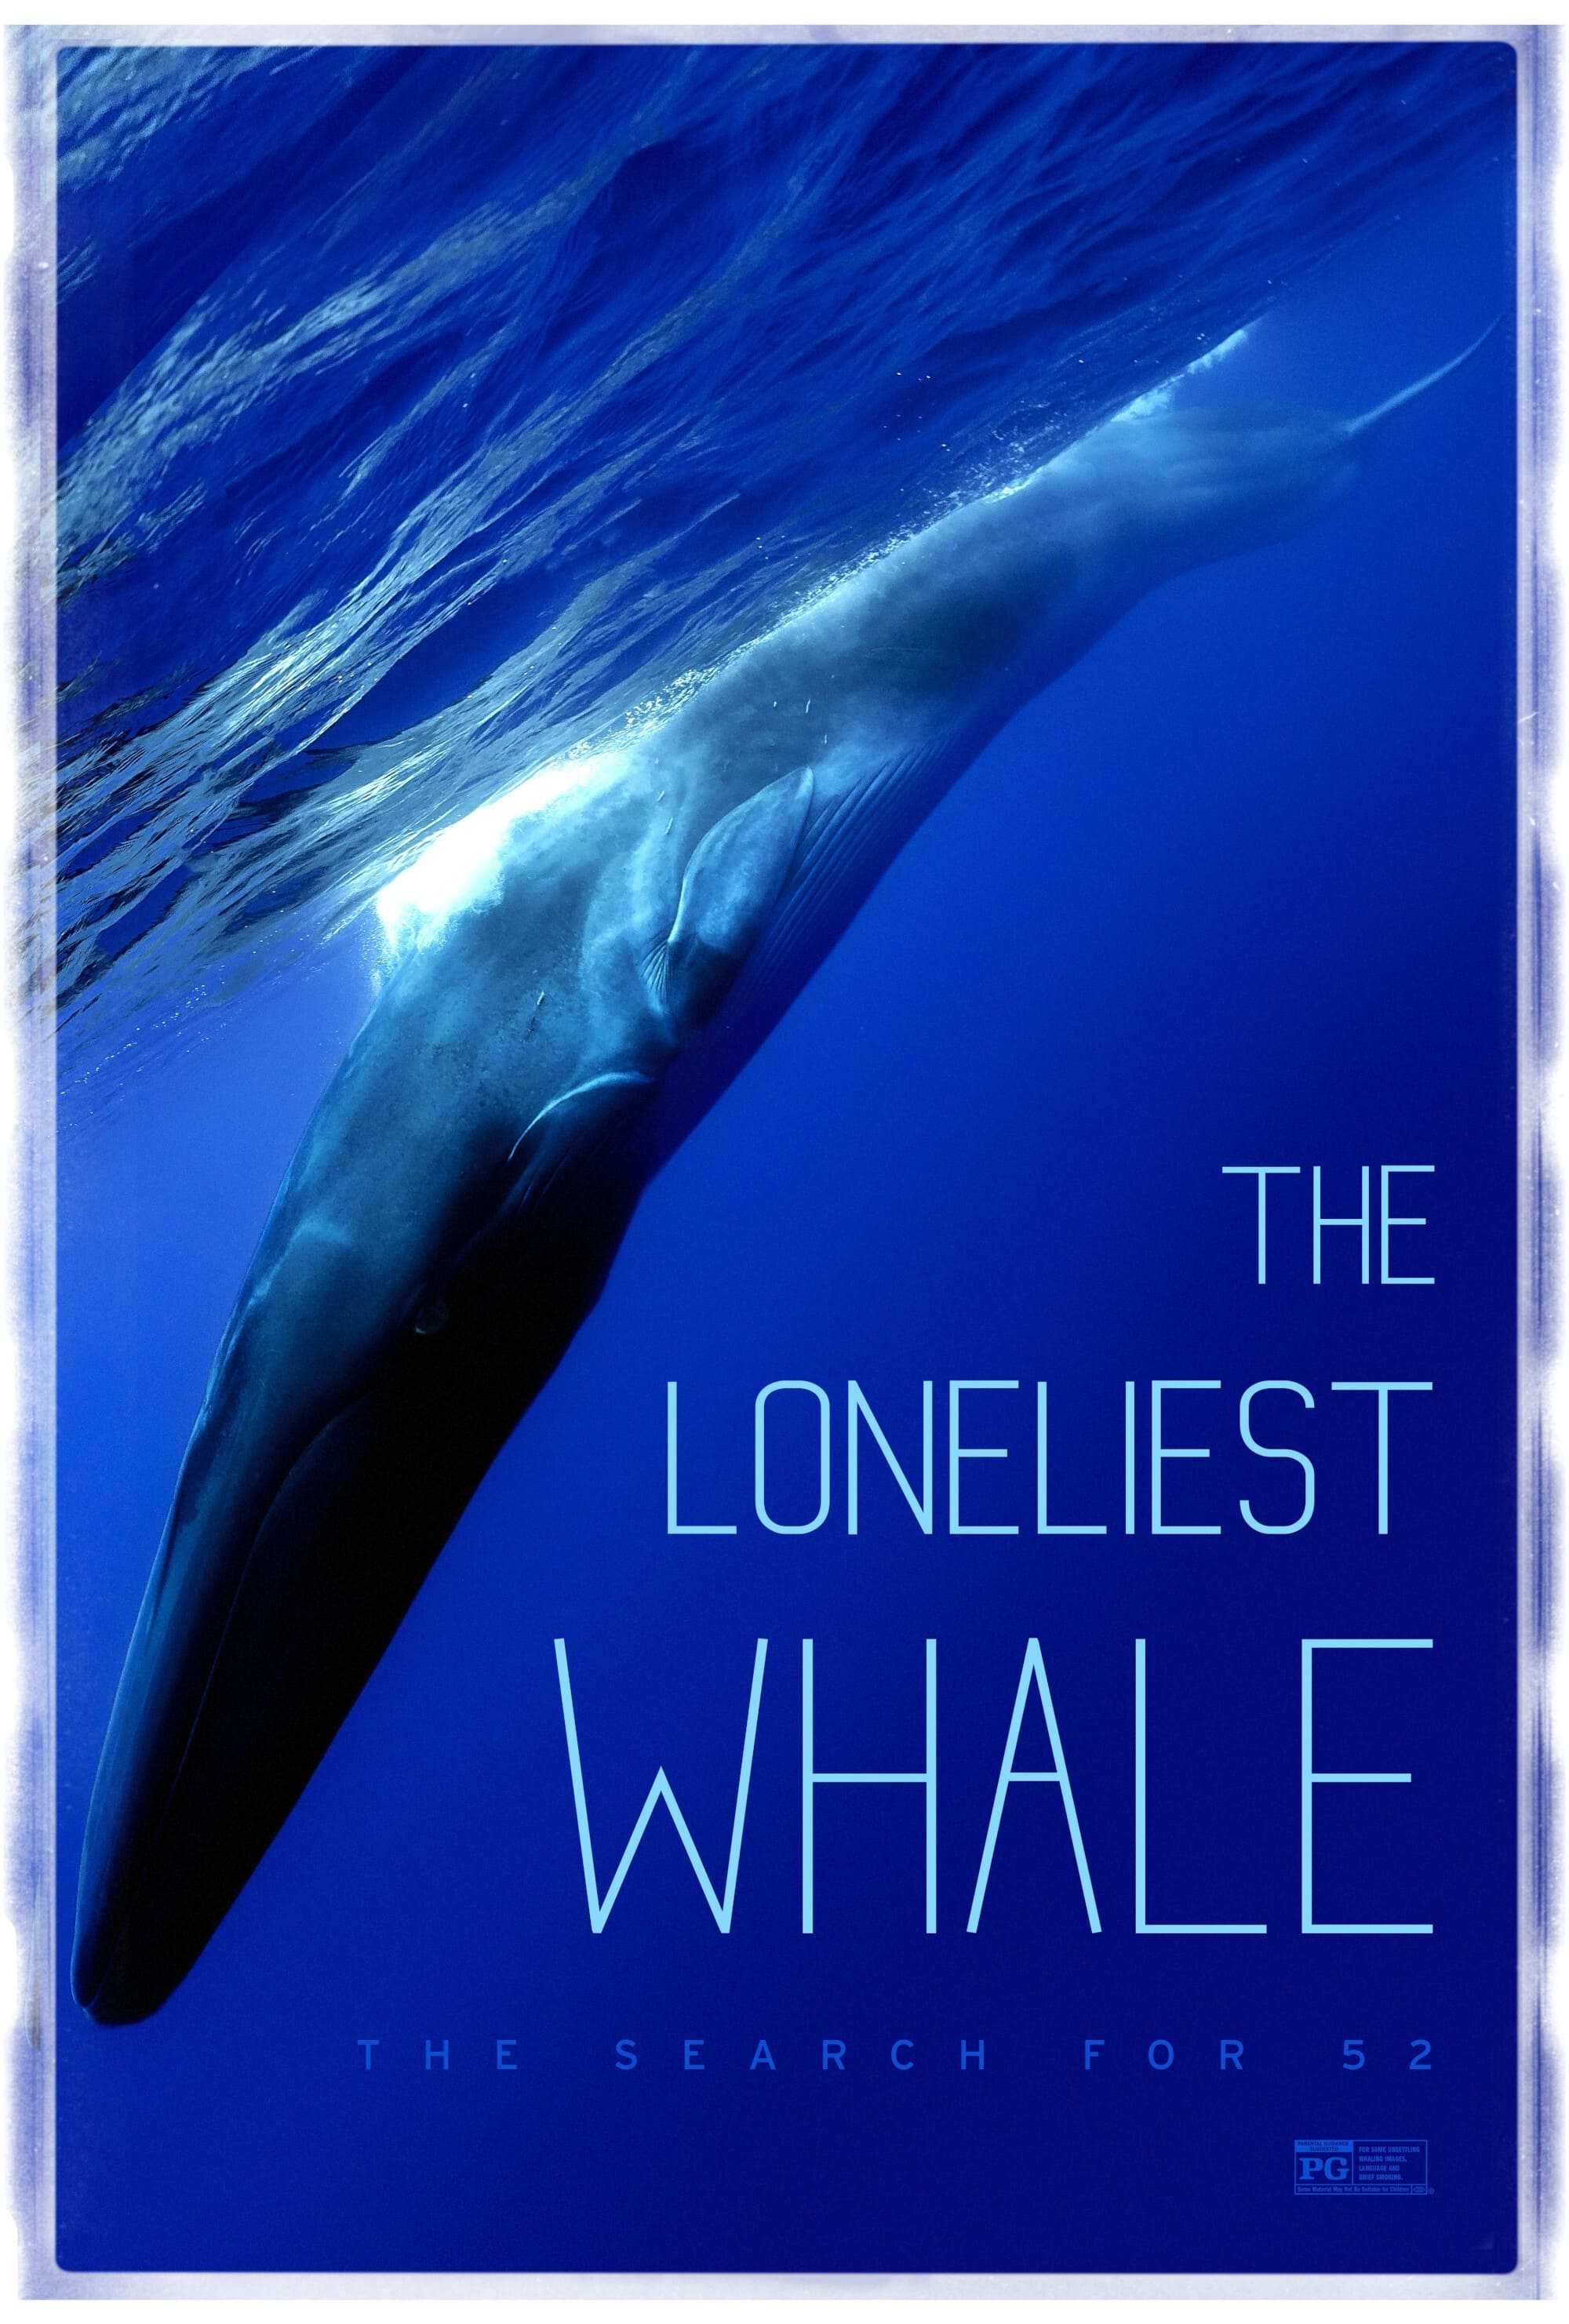 Poster for The Loneliest Whale: The Search for 52